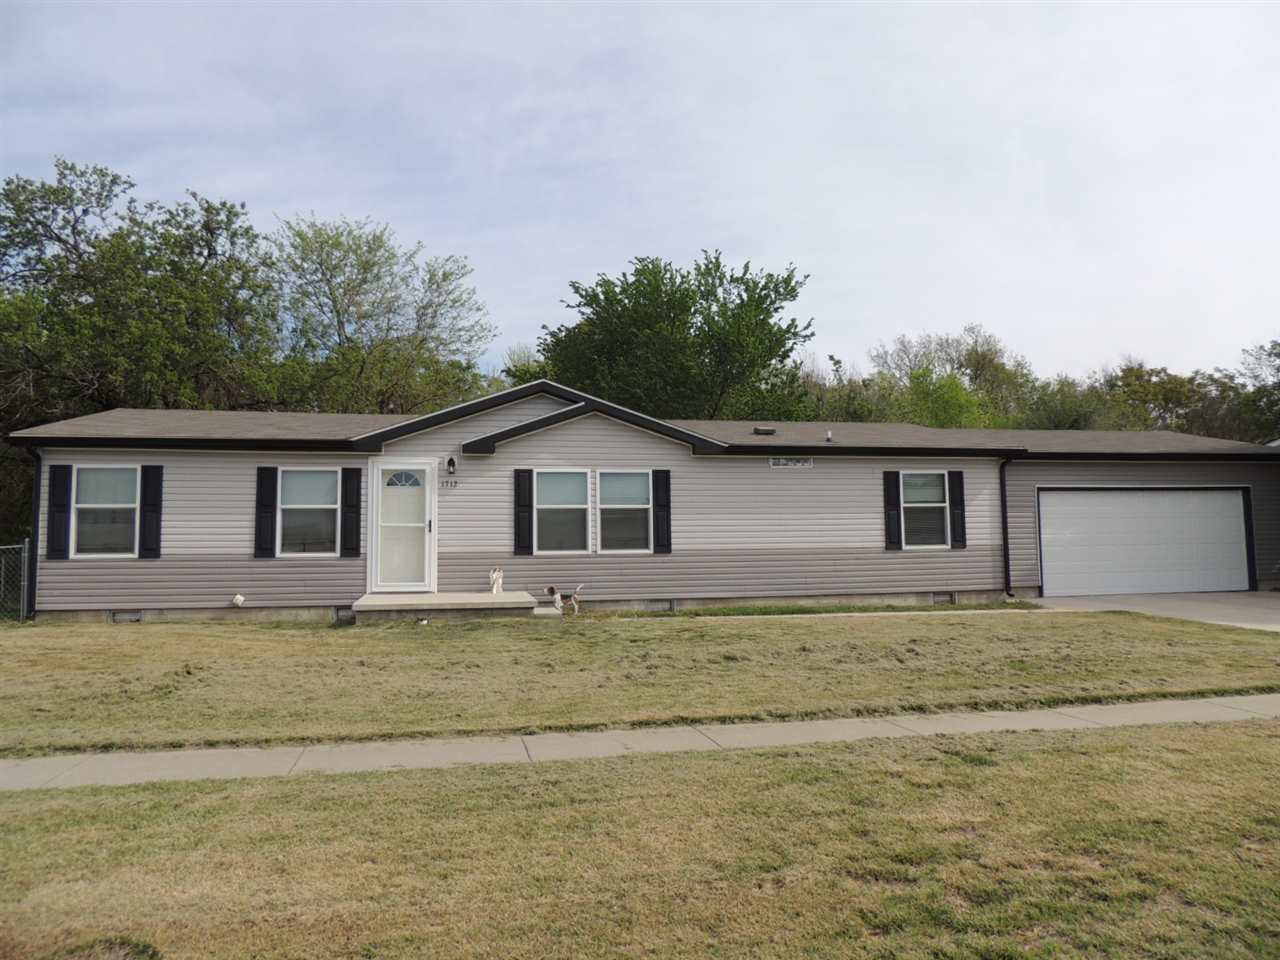 1712 W Lockwood St, Wichita, KS 67217